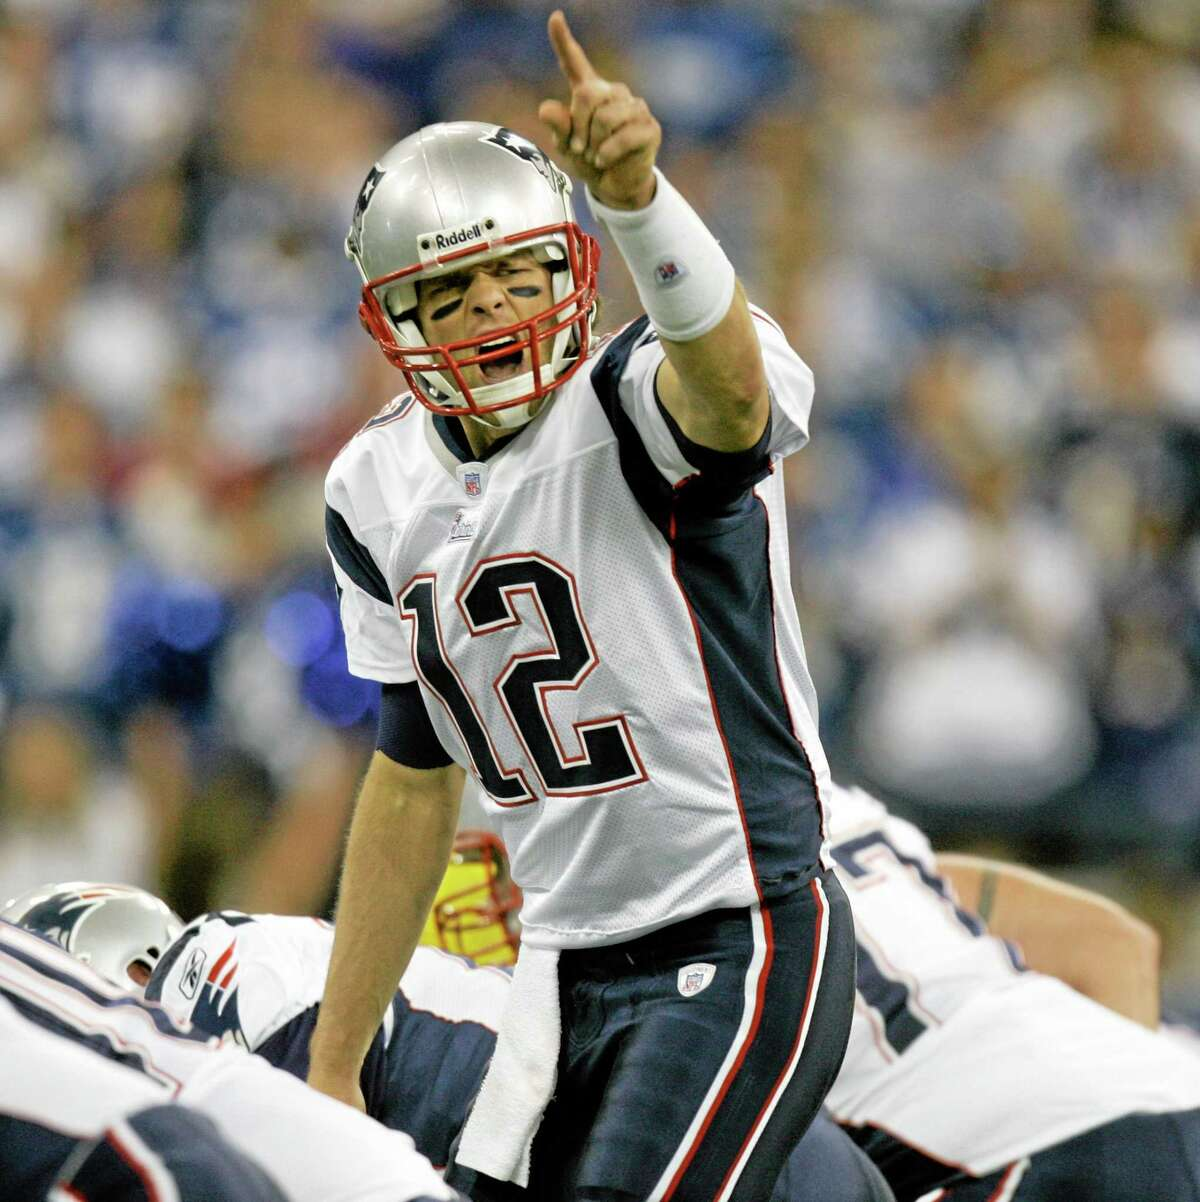 Tom Brady and the Patriots will try to bounce back from their first loss of the season Sunday against the Saints.